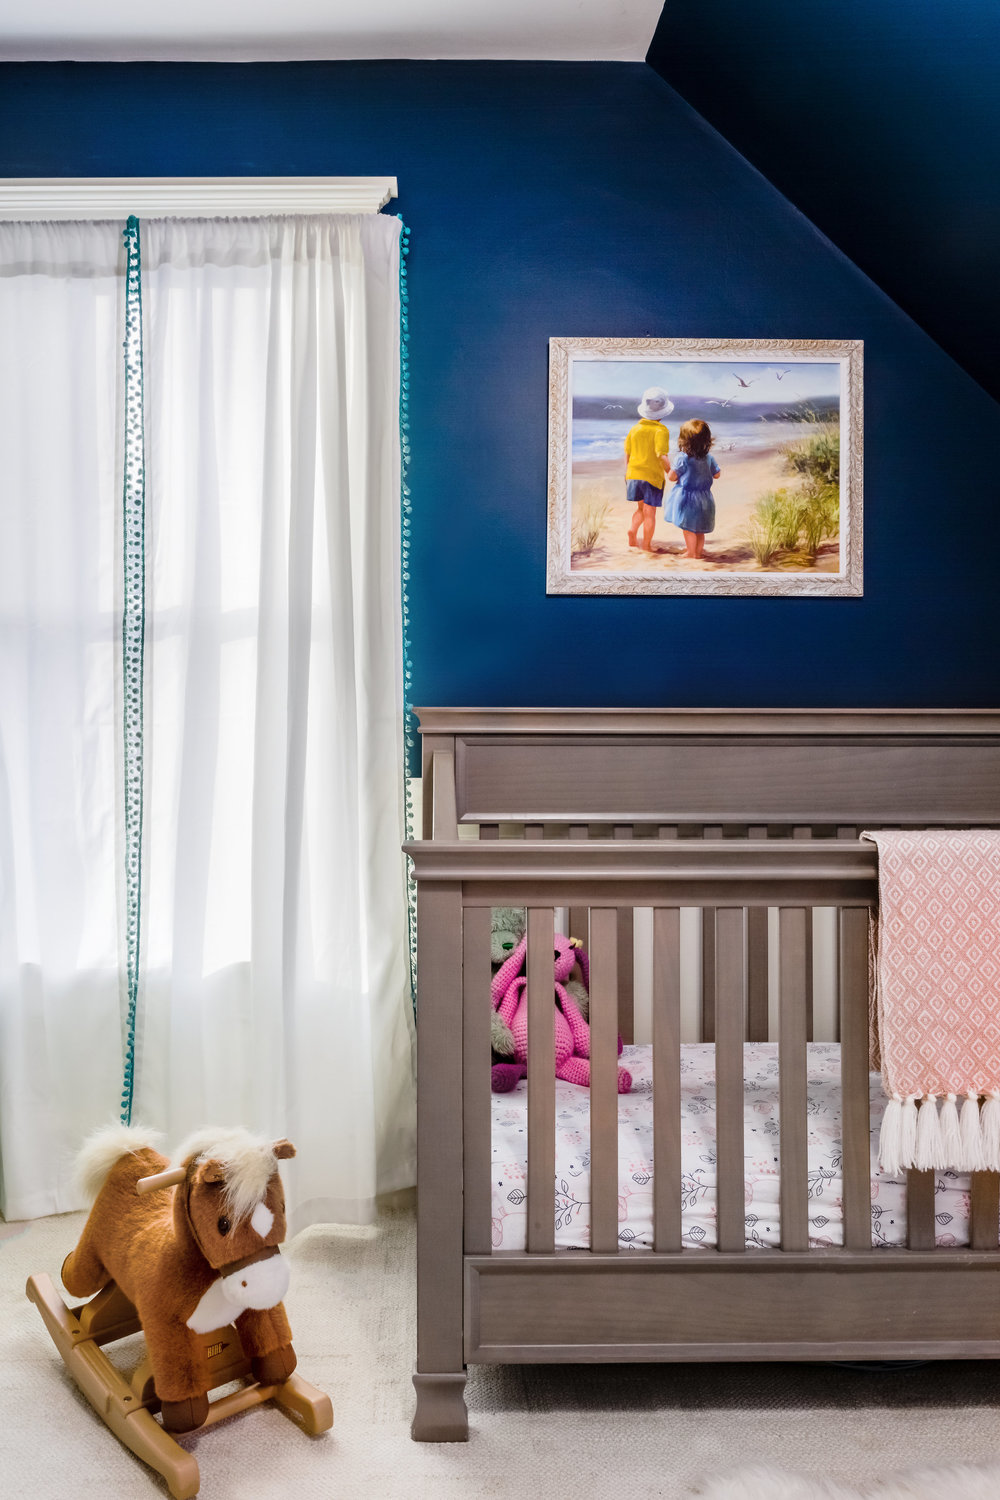 Boo & Rook bridgewater boston interior design traditional modern girl nursery design crib..jpg